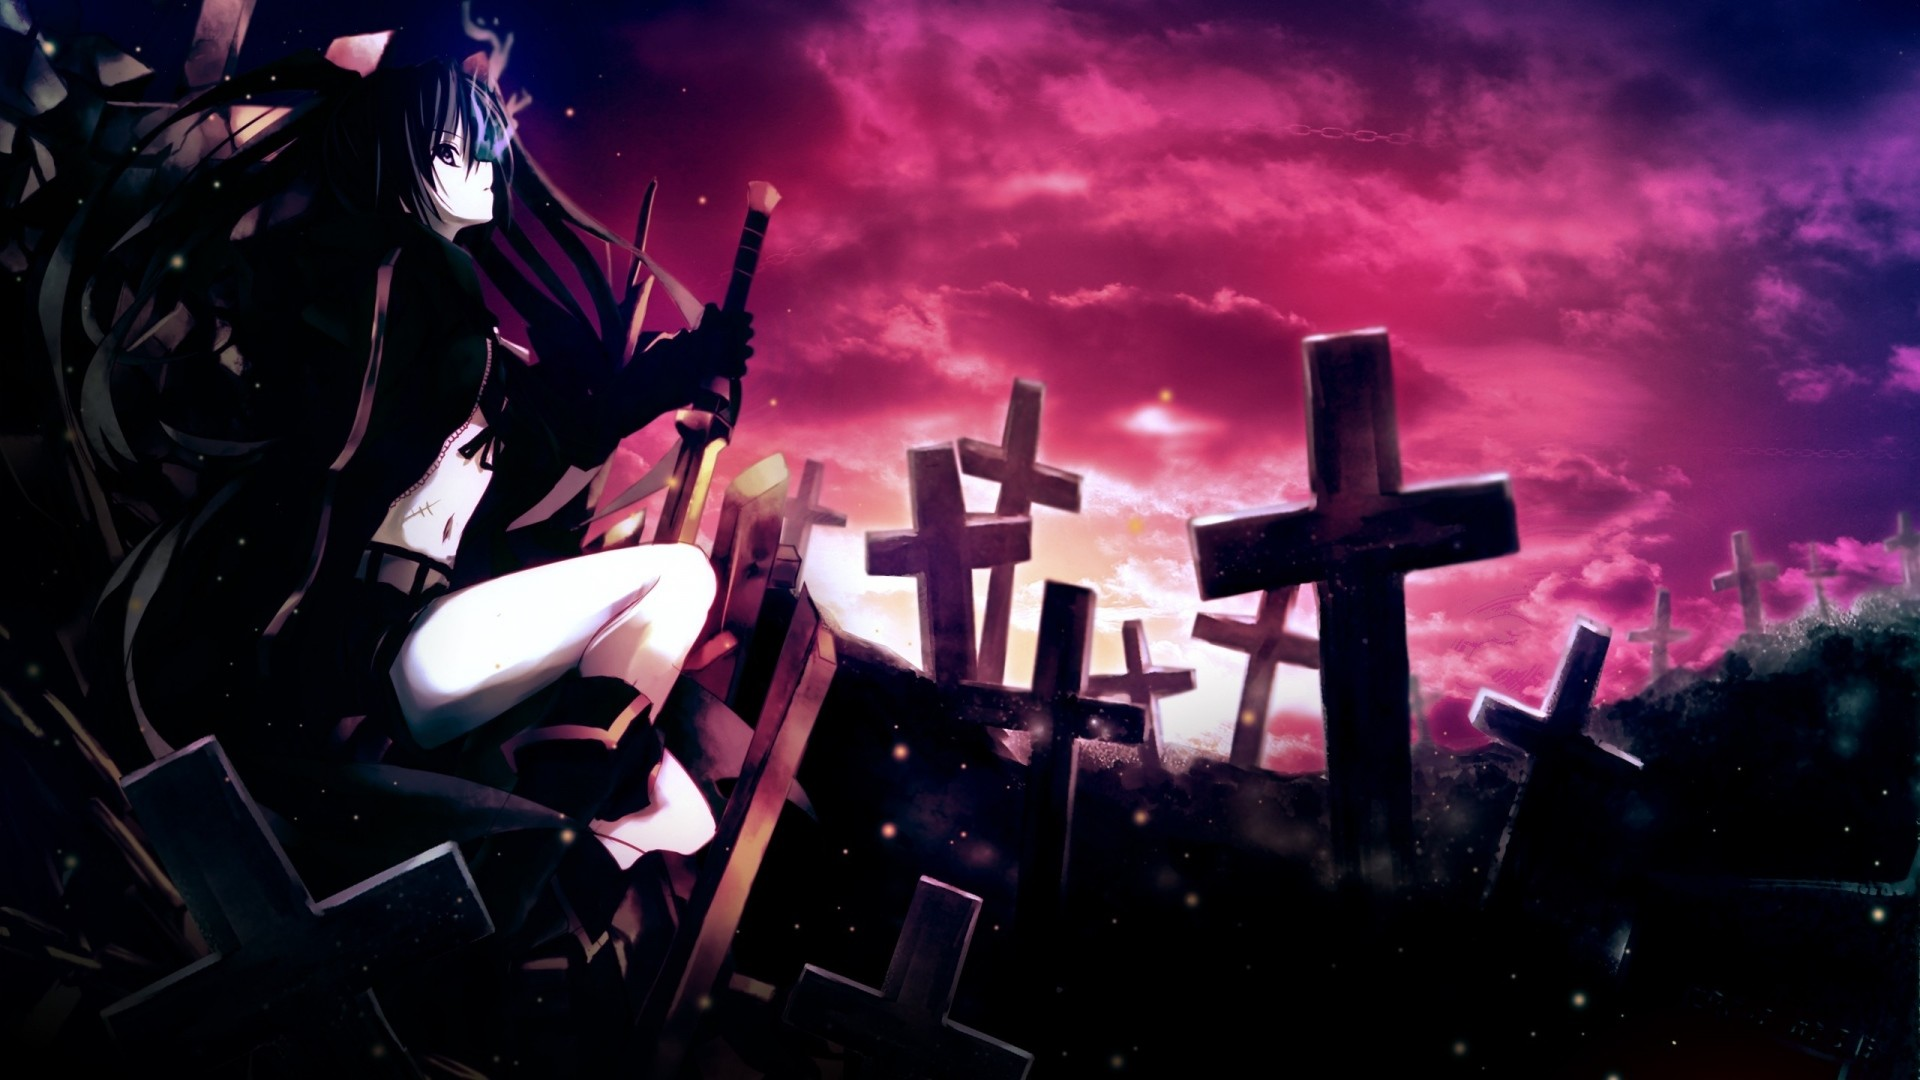 1920x1080 Preview wallpaper anime, girl, thoughtful, sword, cemetery, darkness